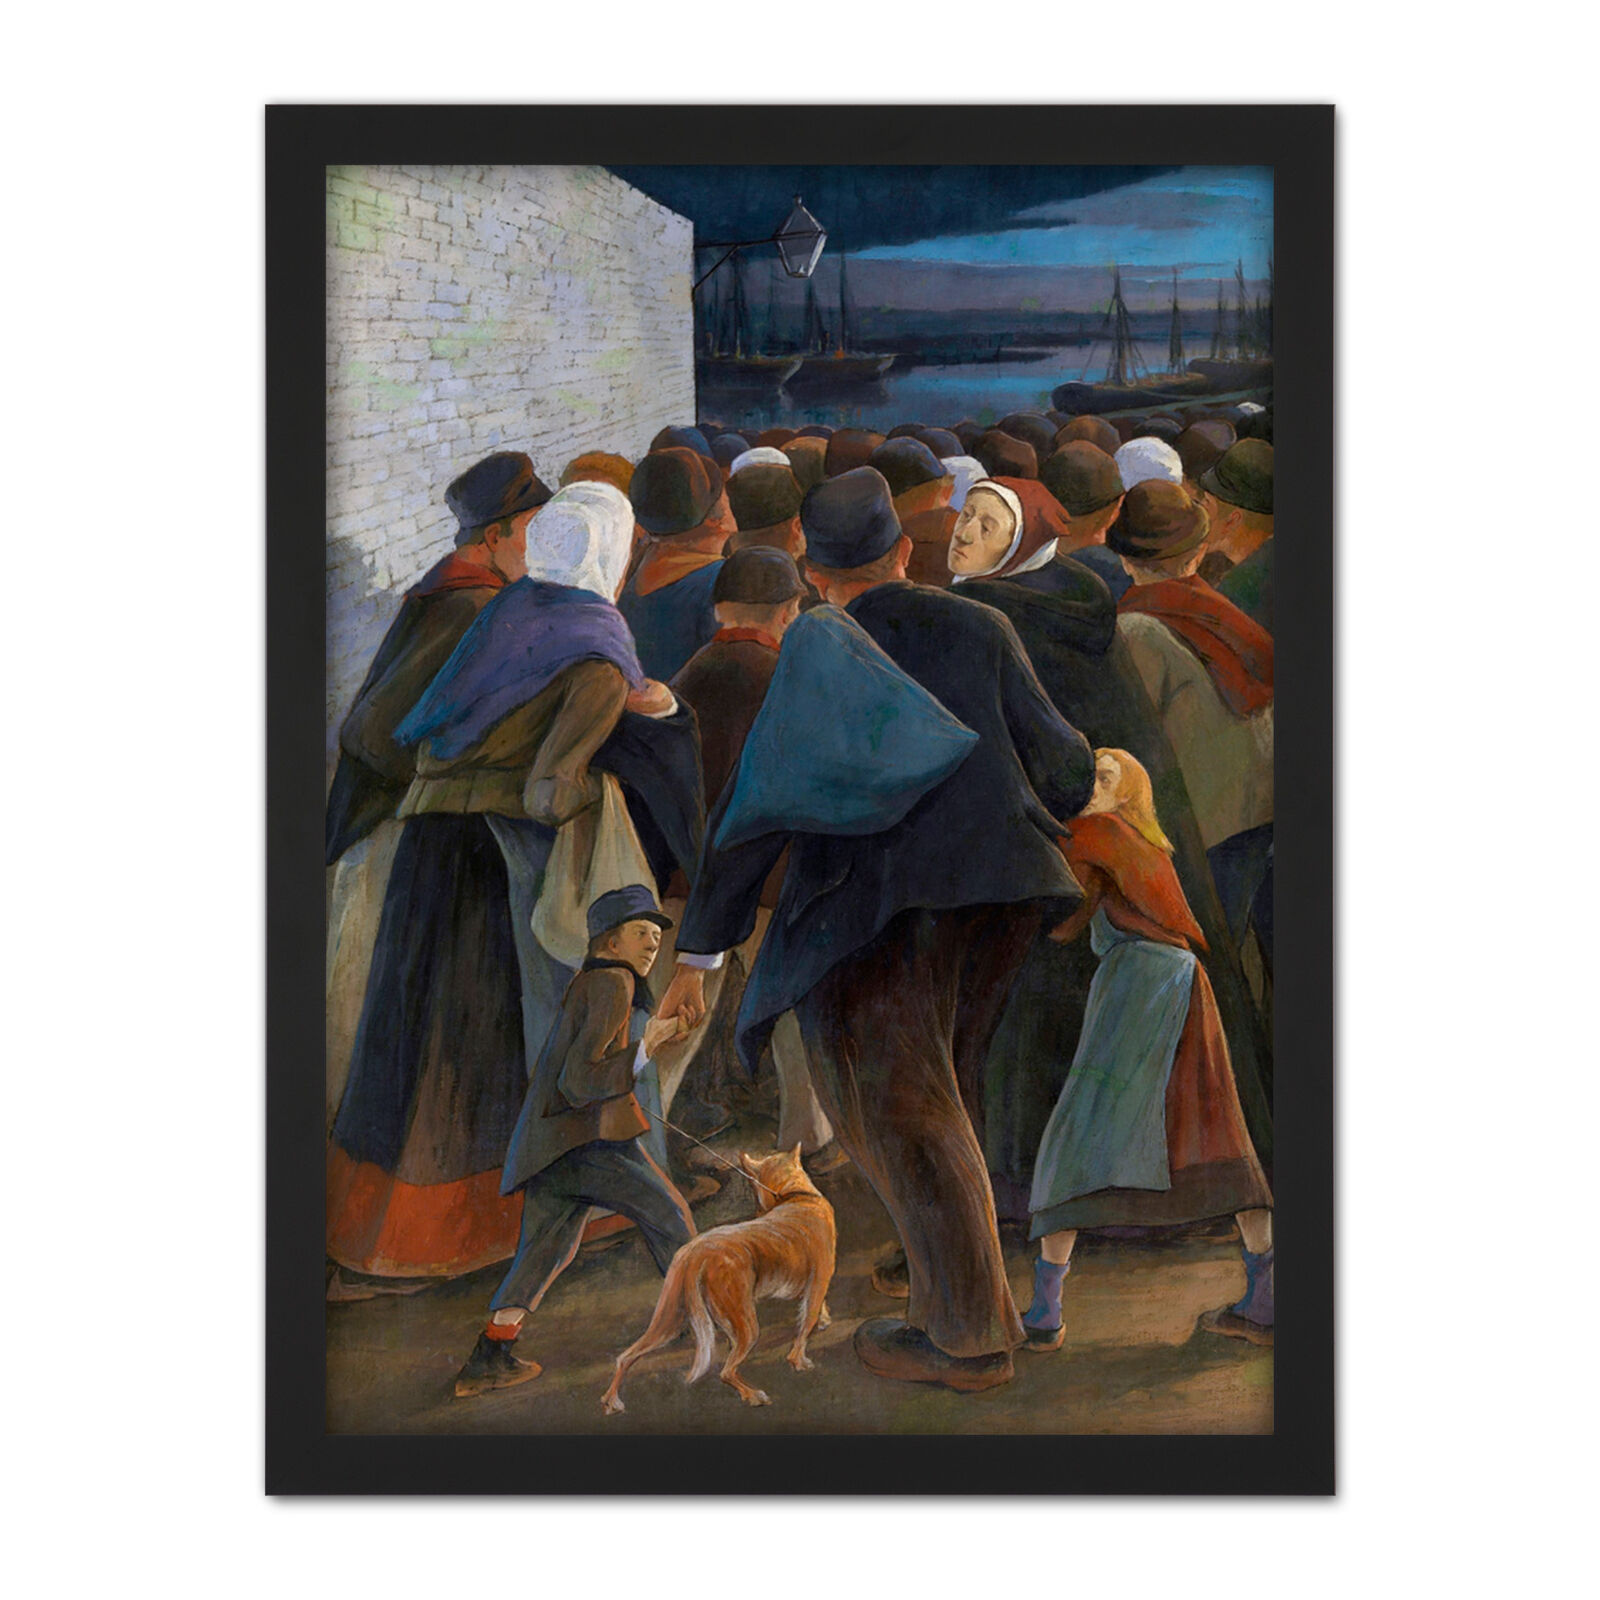 Laermans Emigrants To The Port Crowd Painting Large Framed Kunst Drucken